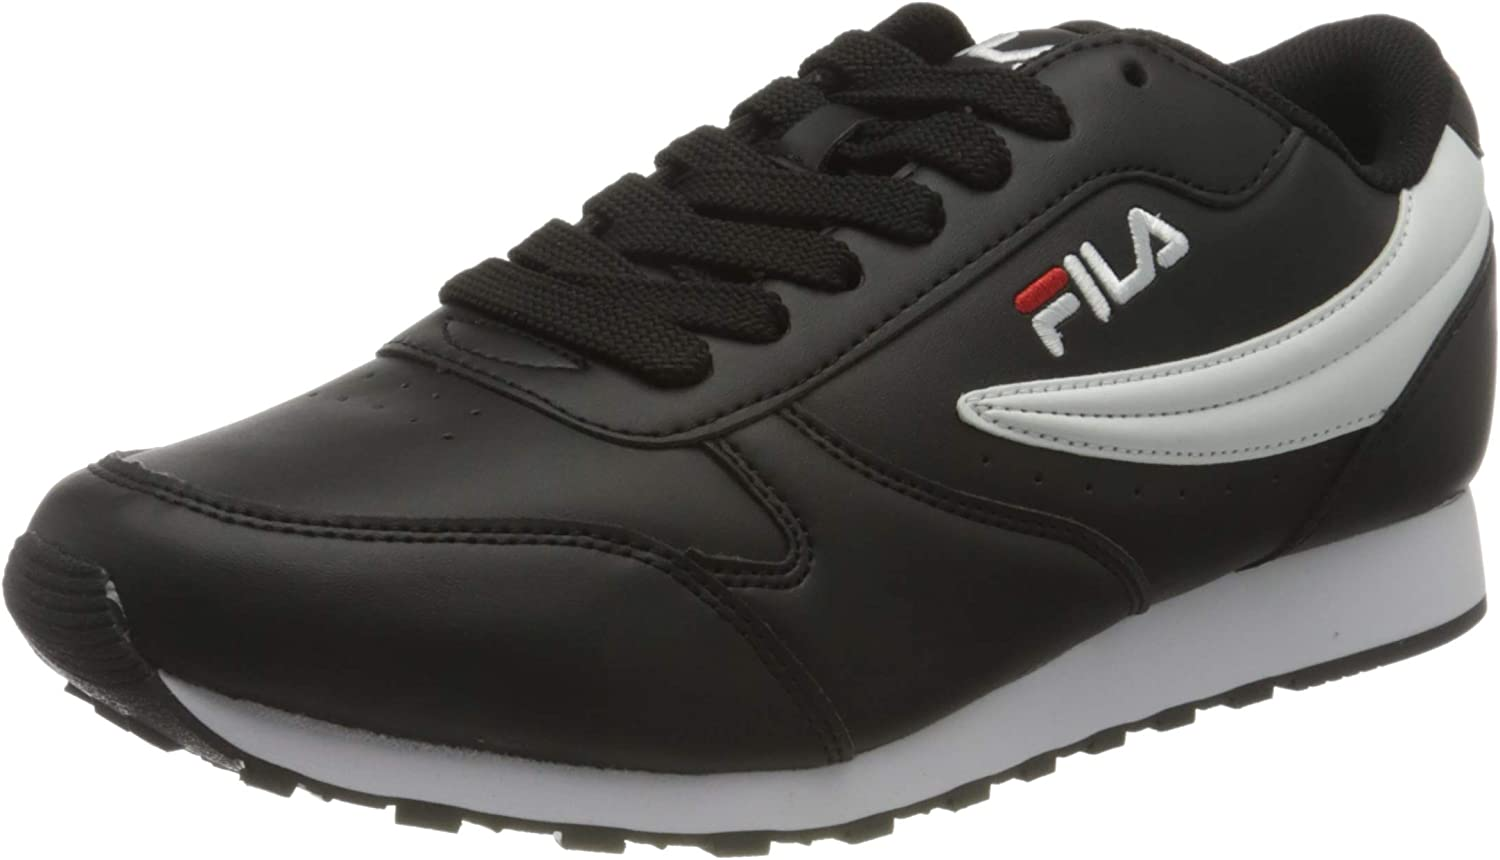 Fila Sales of SALE items from new works Super beauty product restock quality top Men's Sneakers Low-Top